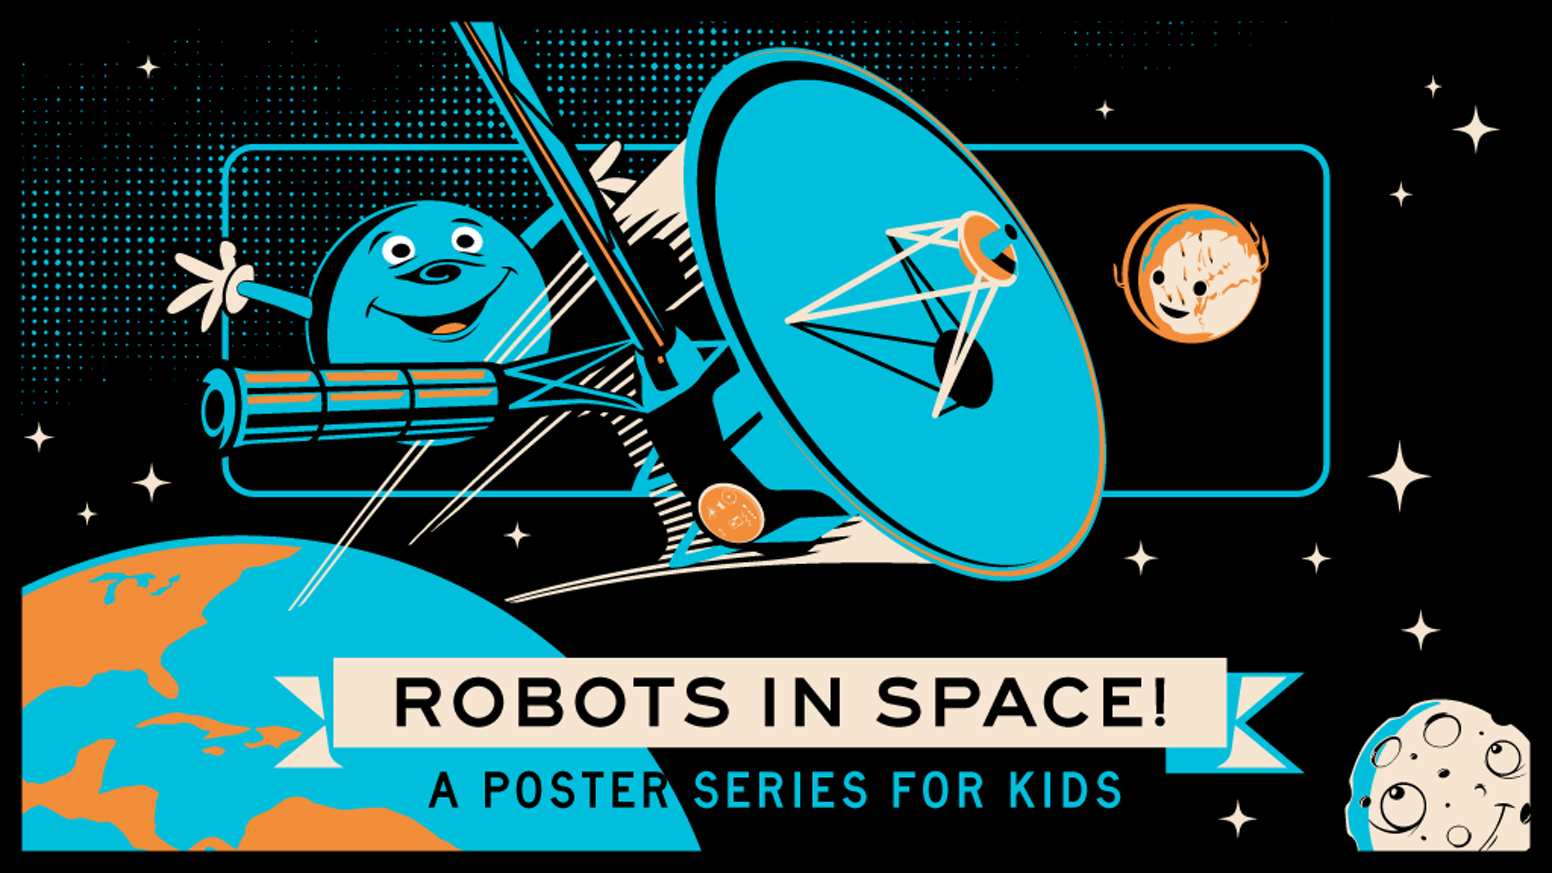 Glow-in-the-dark poster series that celebrates the cosmos and the incredible missions that expanded our knowledge of the universe!